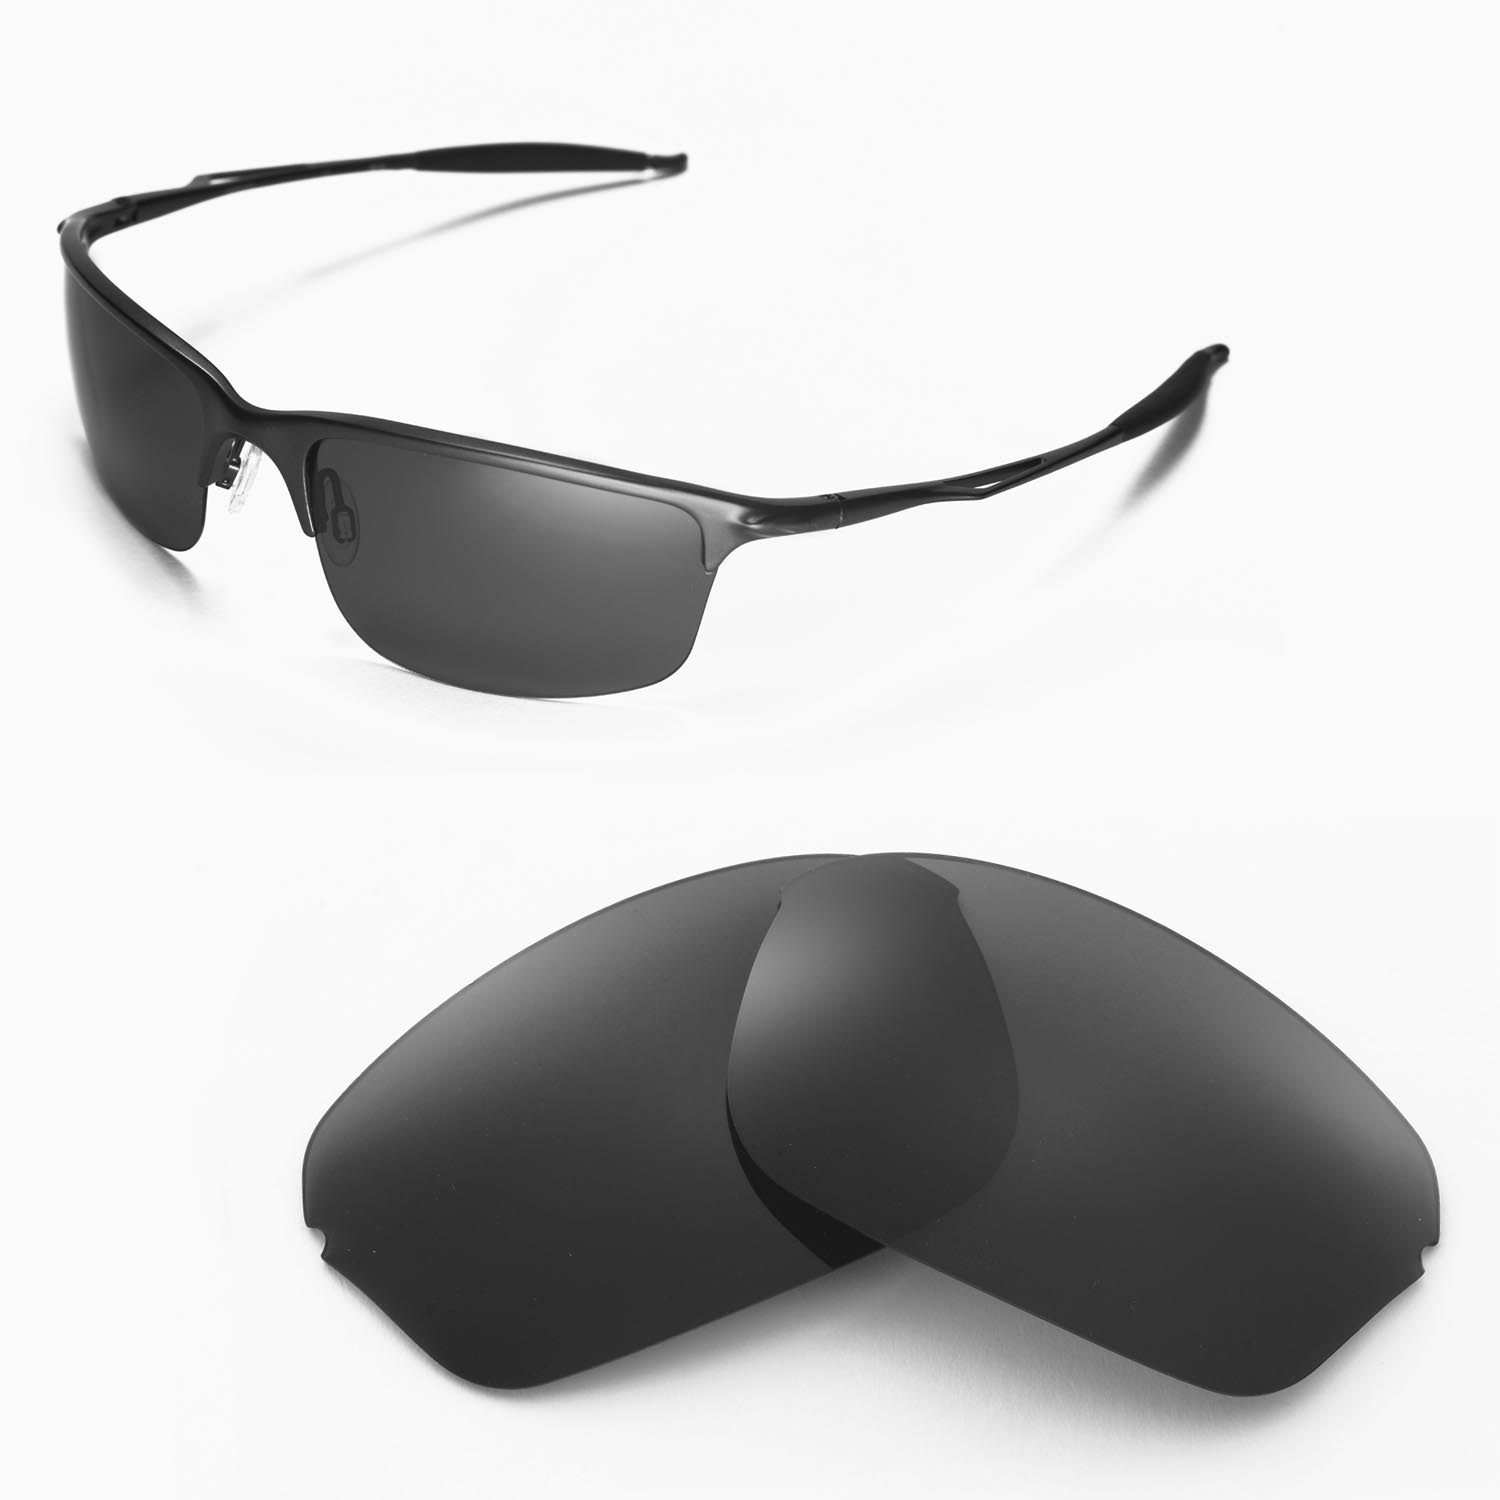 New Walleva Black Replacement Lenses For Oakley Half Wire 2.0 ...